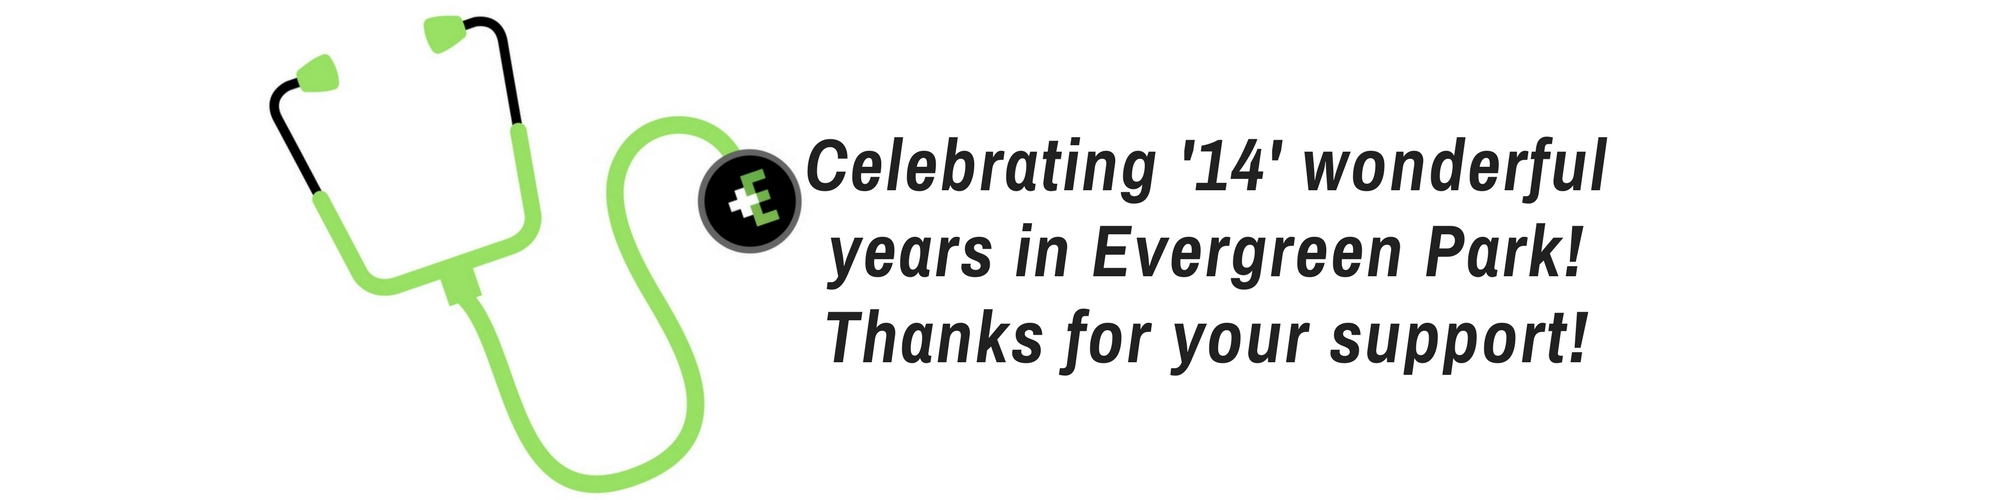 Celebrating 14 years in Evergreen Park